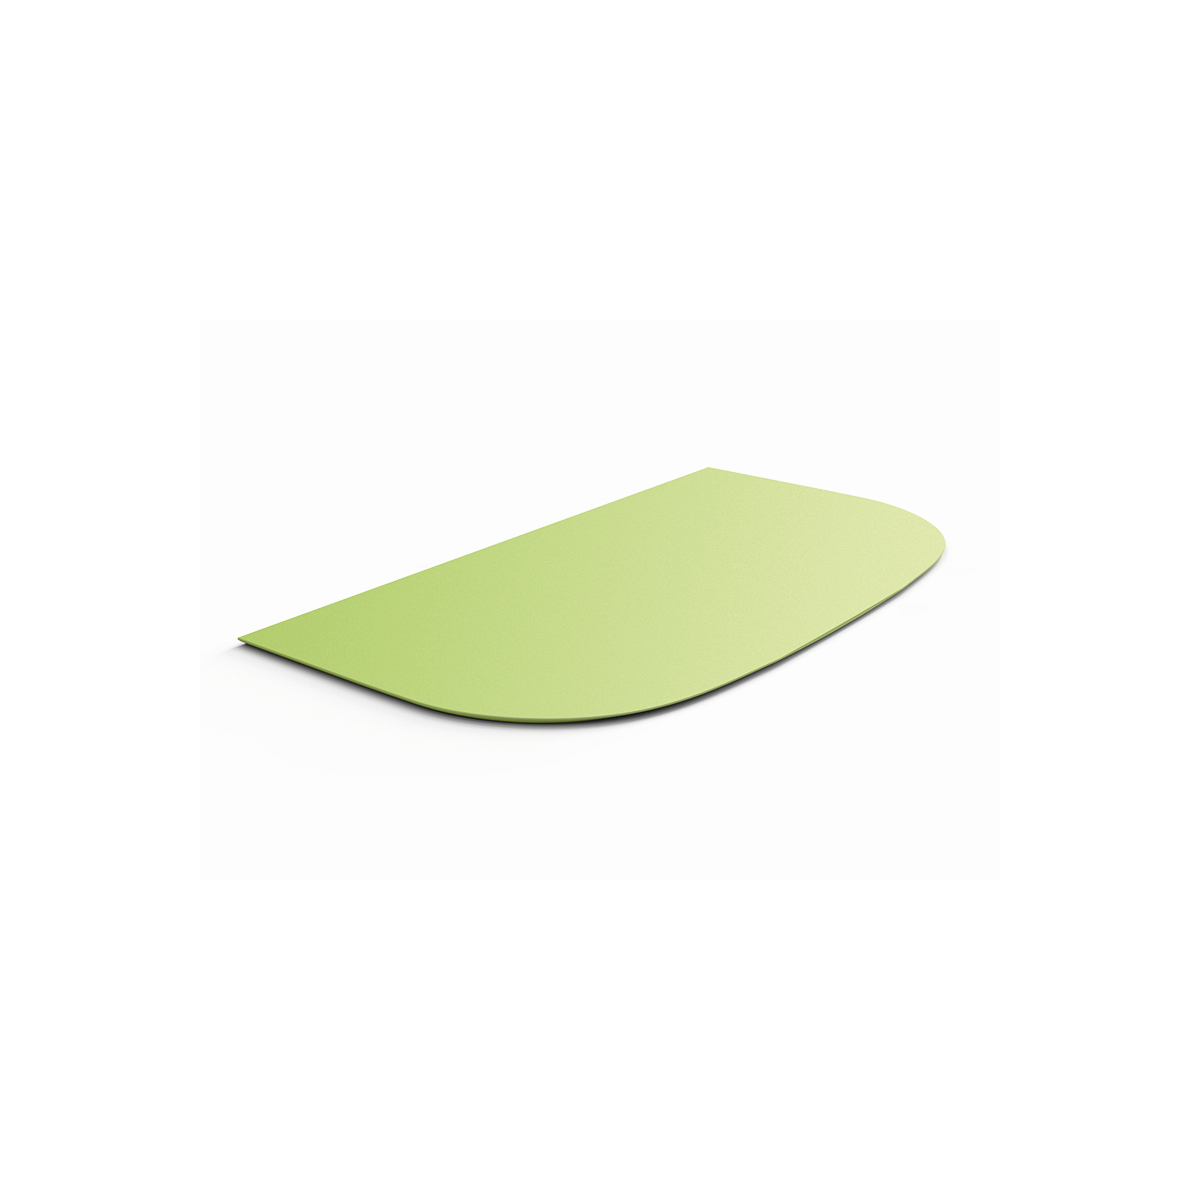 SUREFEED FEEDER MAT GREEN 00001